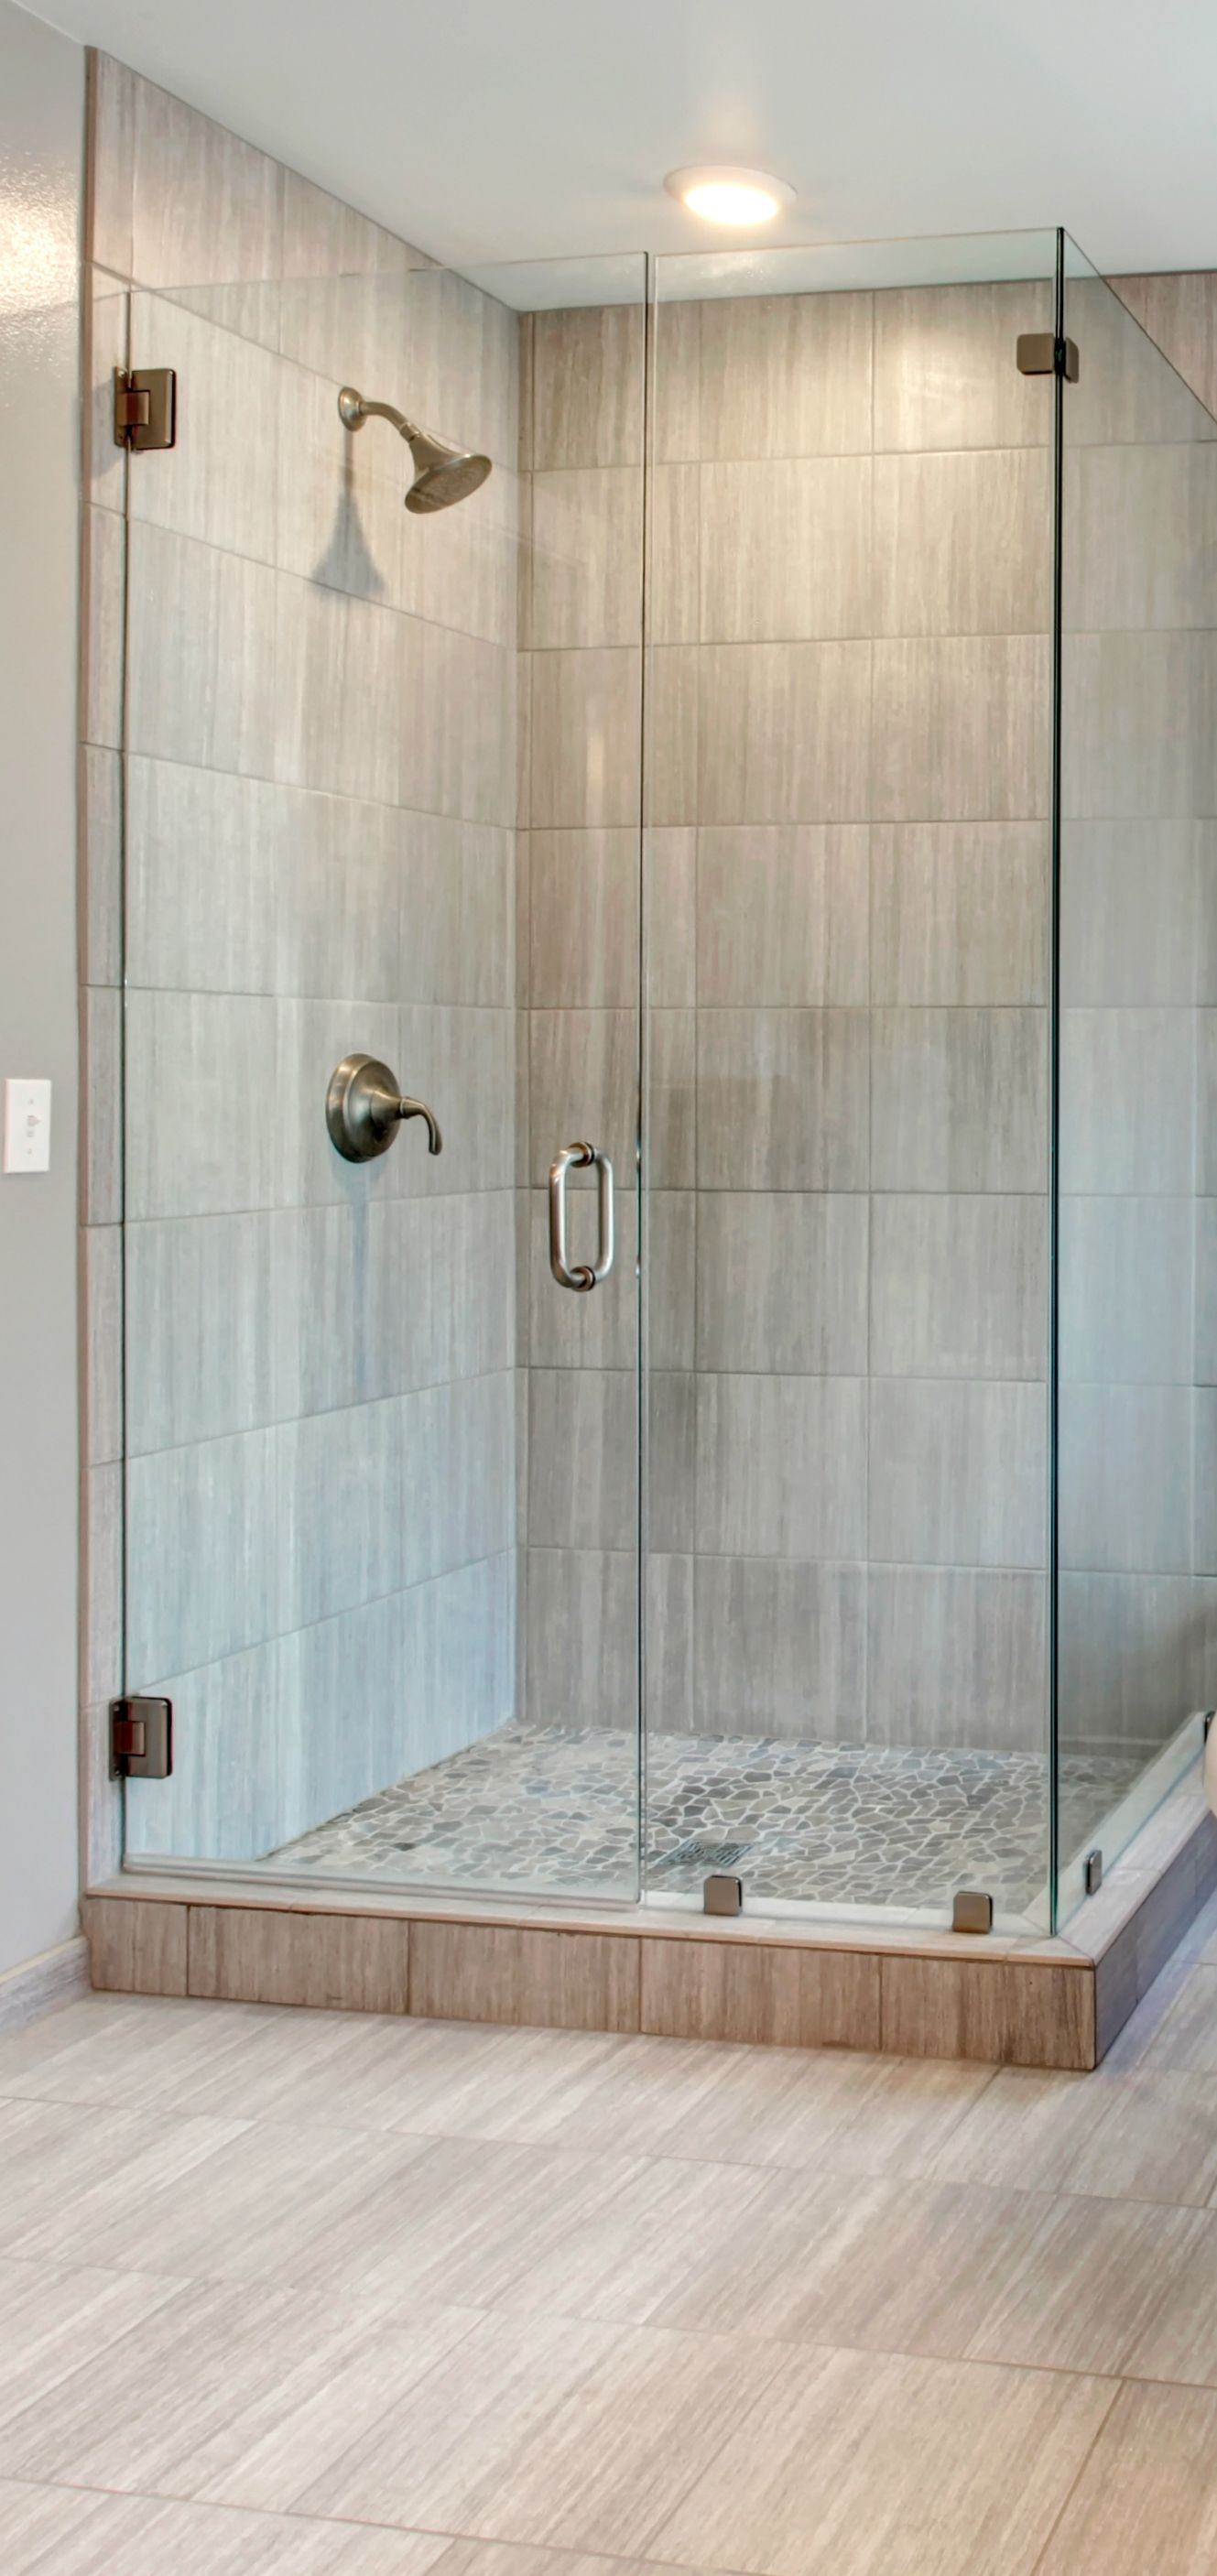 Walk in shower designs for small bathrooms - Showers Corner Walk In Shower Ideas For Simple Small Bathroom With Natural Stone Shower Pans Decor